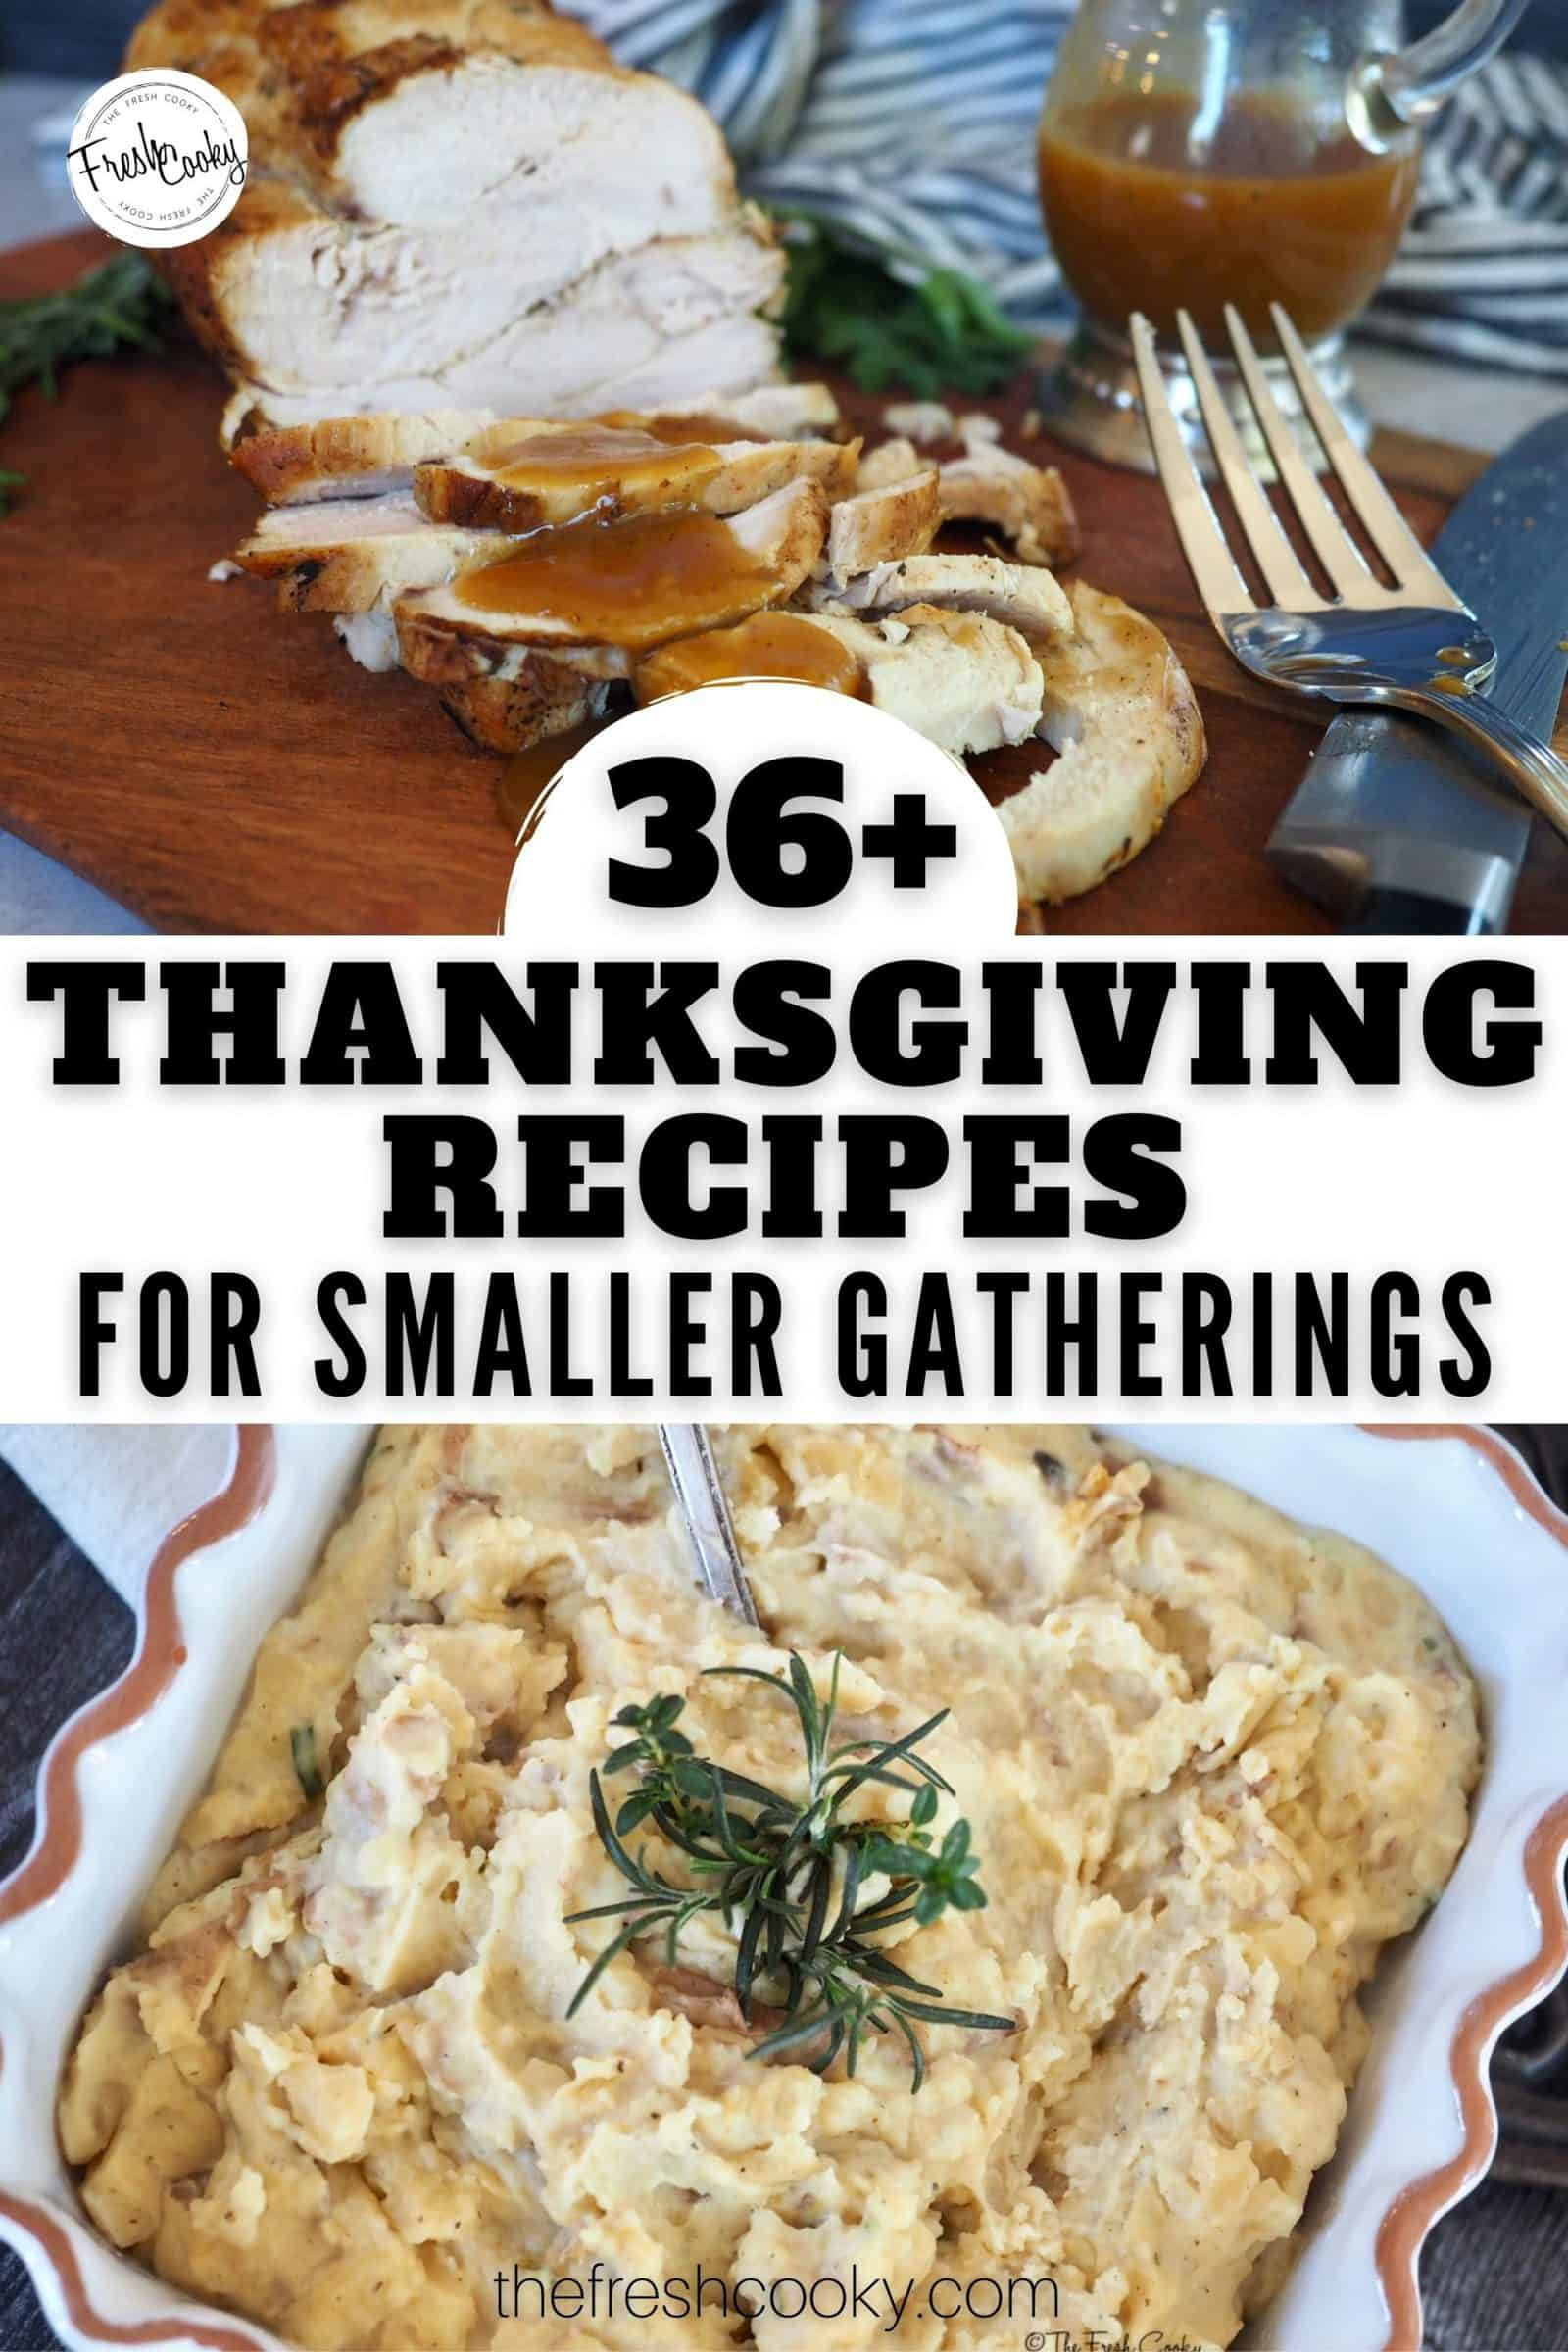 All the BEST Traditional Thanksgiving Menu Ideas for 2020. Main dish (turkey), stuffing, gravy, potato dishes, hot dishes, casseroles, cold side dishes, cranberries, relishes and fluffs, to delicious desserts finishing with cocktails, mocktails, hot drinks and more. Small Thanksgiving Ideas for two four and more. #thanksgivingfortwo #thefreshcooky #traditionalthanksgiving via @thefreshcooky